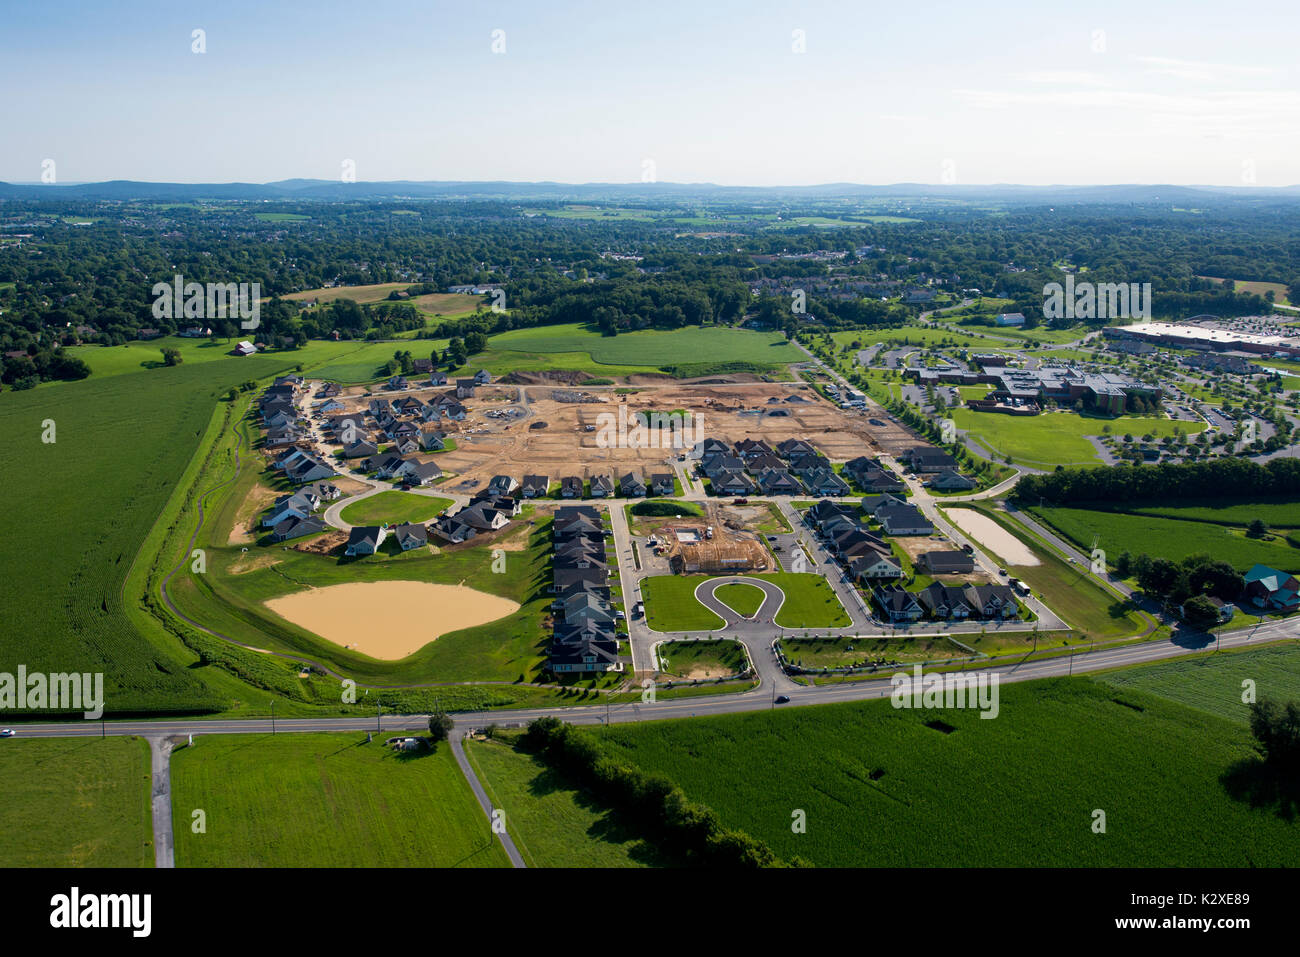 URBAN SPRAWL AERIAL VIEW OF HOUSING DEVELEPMENT UNDER CONSTRUCTION NEXT TO AGRICULTURAL FIELDS, LITITZ PA - Stock Image